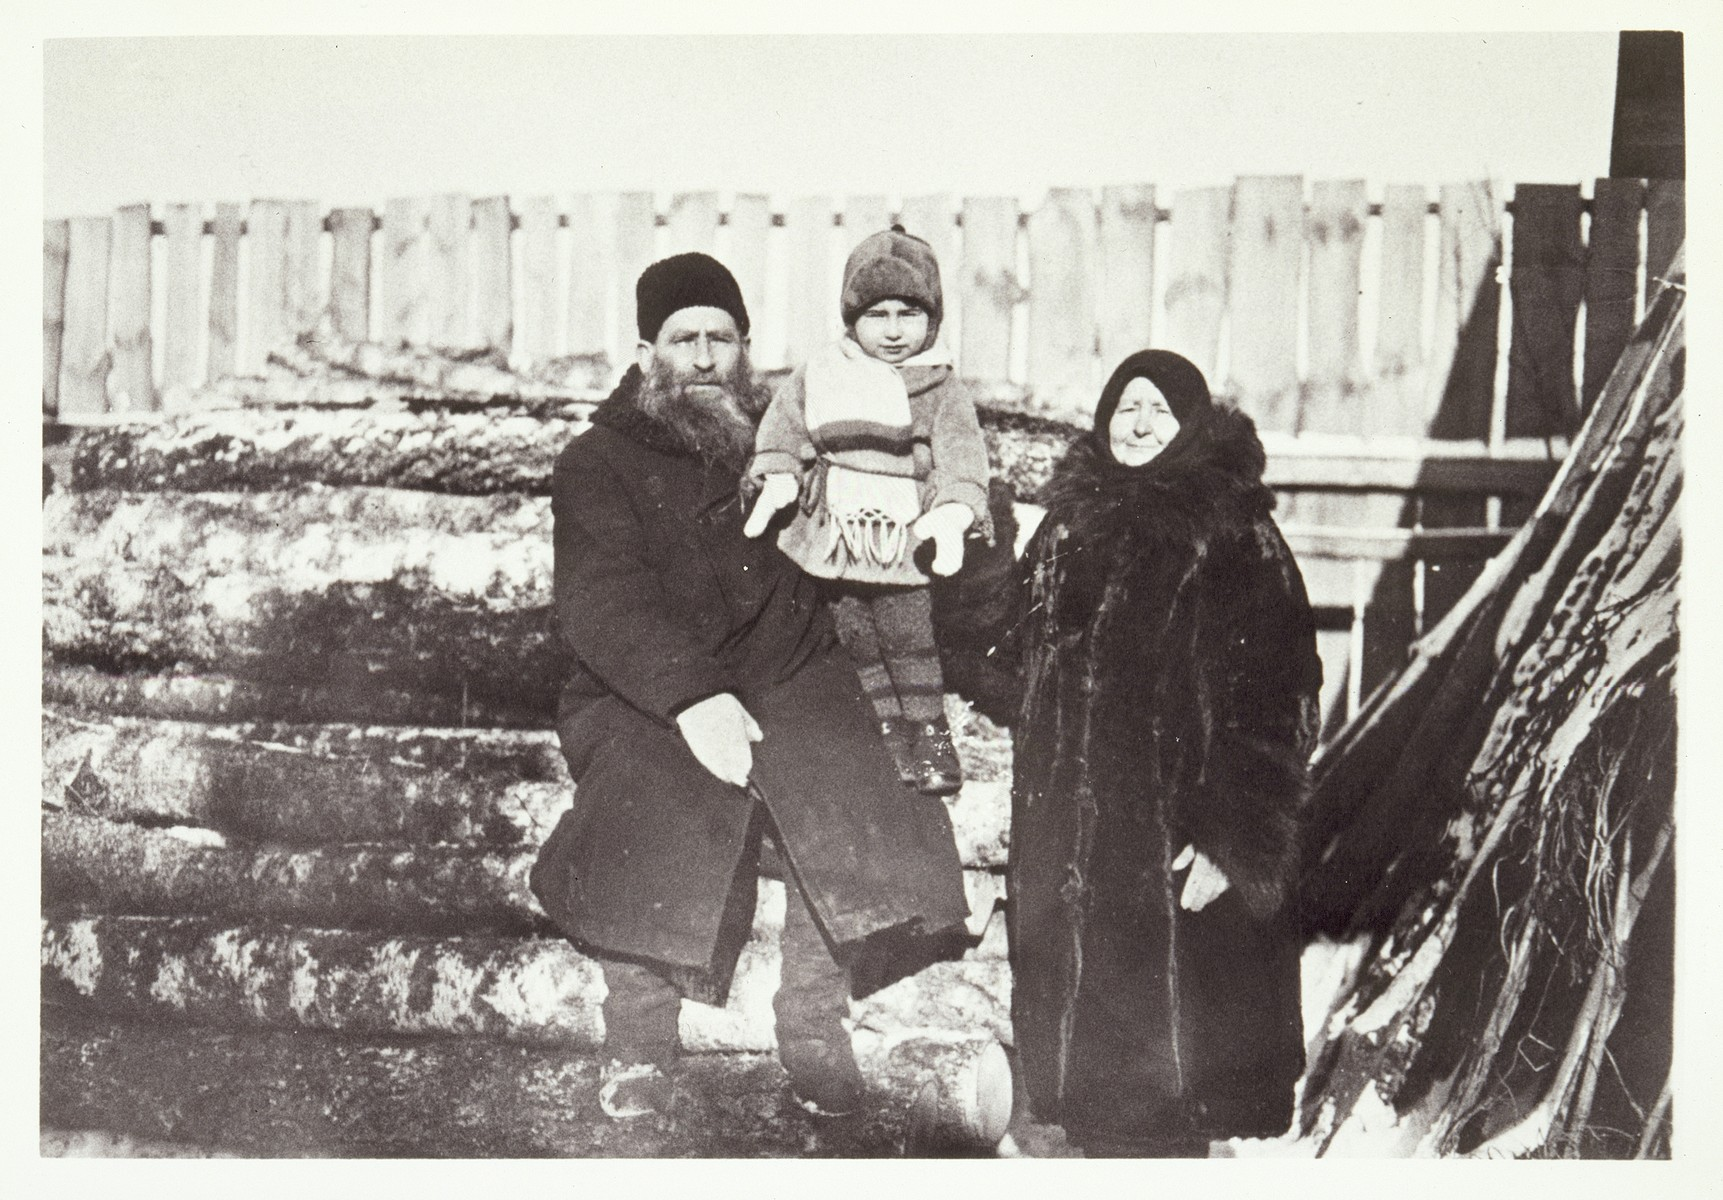 Reb Dovid and Leah Moszczenik pose by a wood pile with their grandson Yudaleh Kabacznik in the family's backyard.   Yudaleh was killed by the Polish Home Army in 1944. Leah was killed by the Germans during the September 1941 mass shooting action in Eisiskes.  Reb Dovid died a natural death.